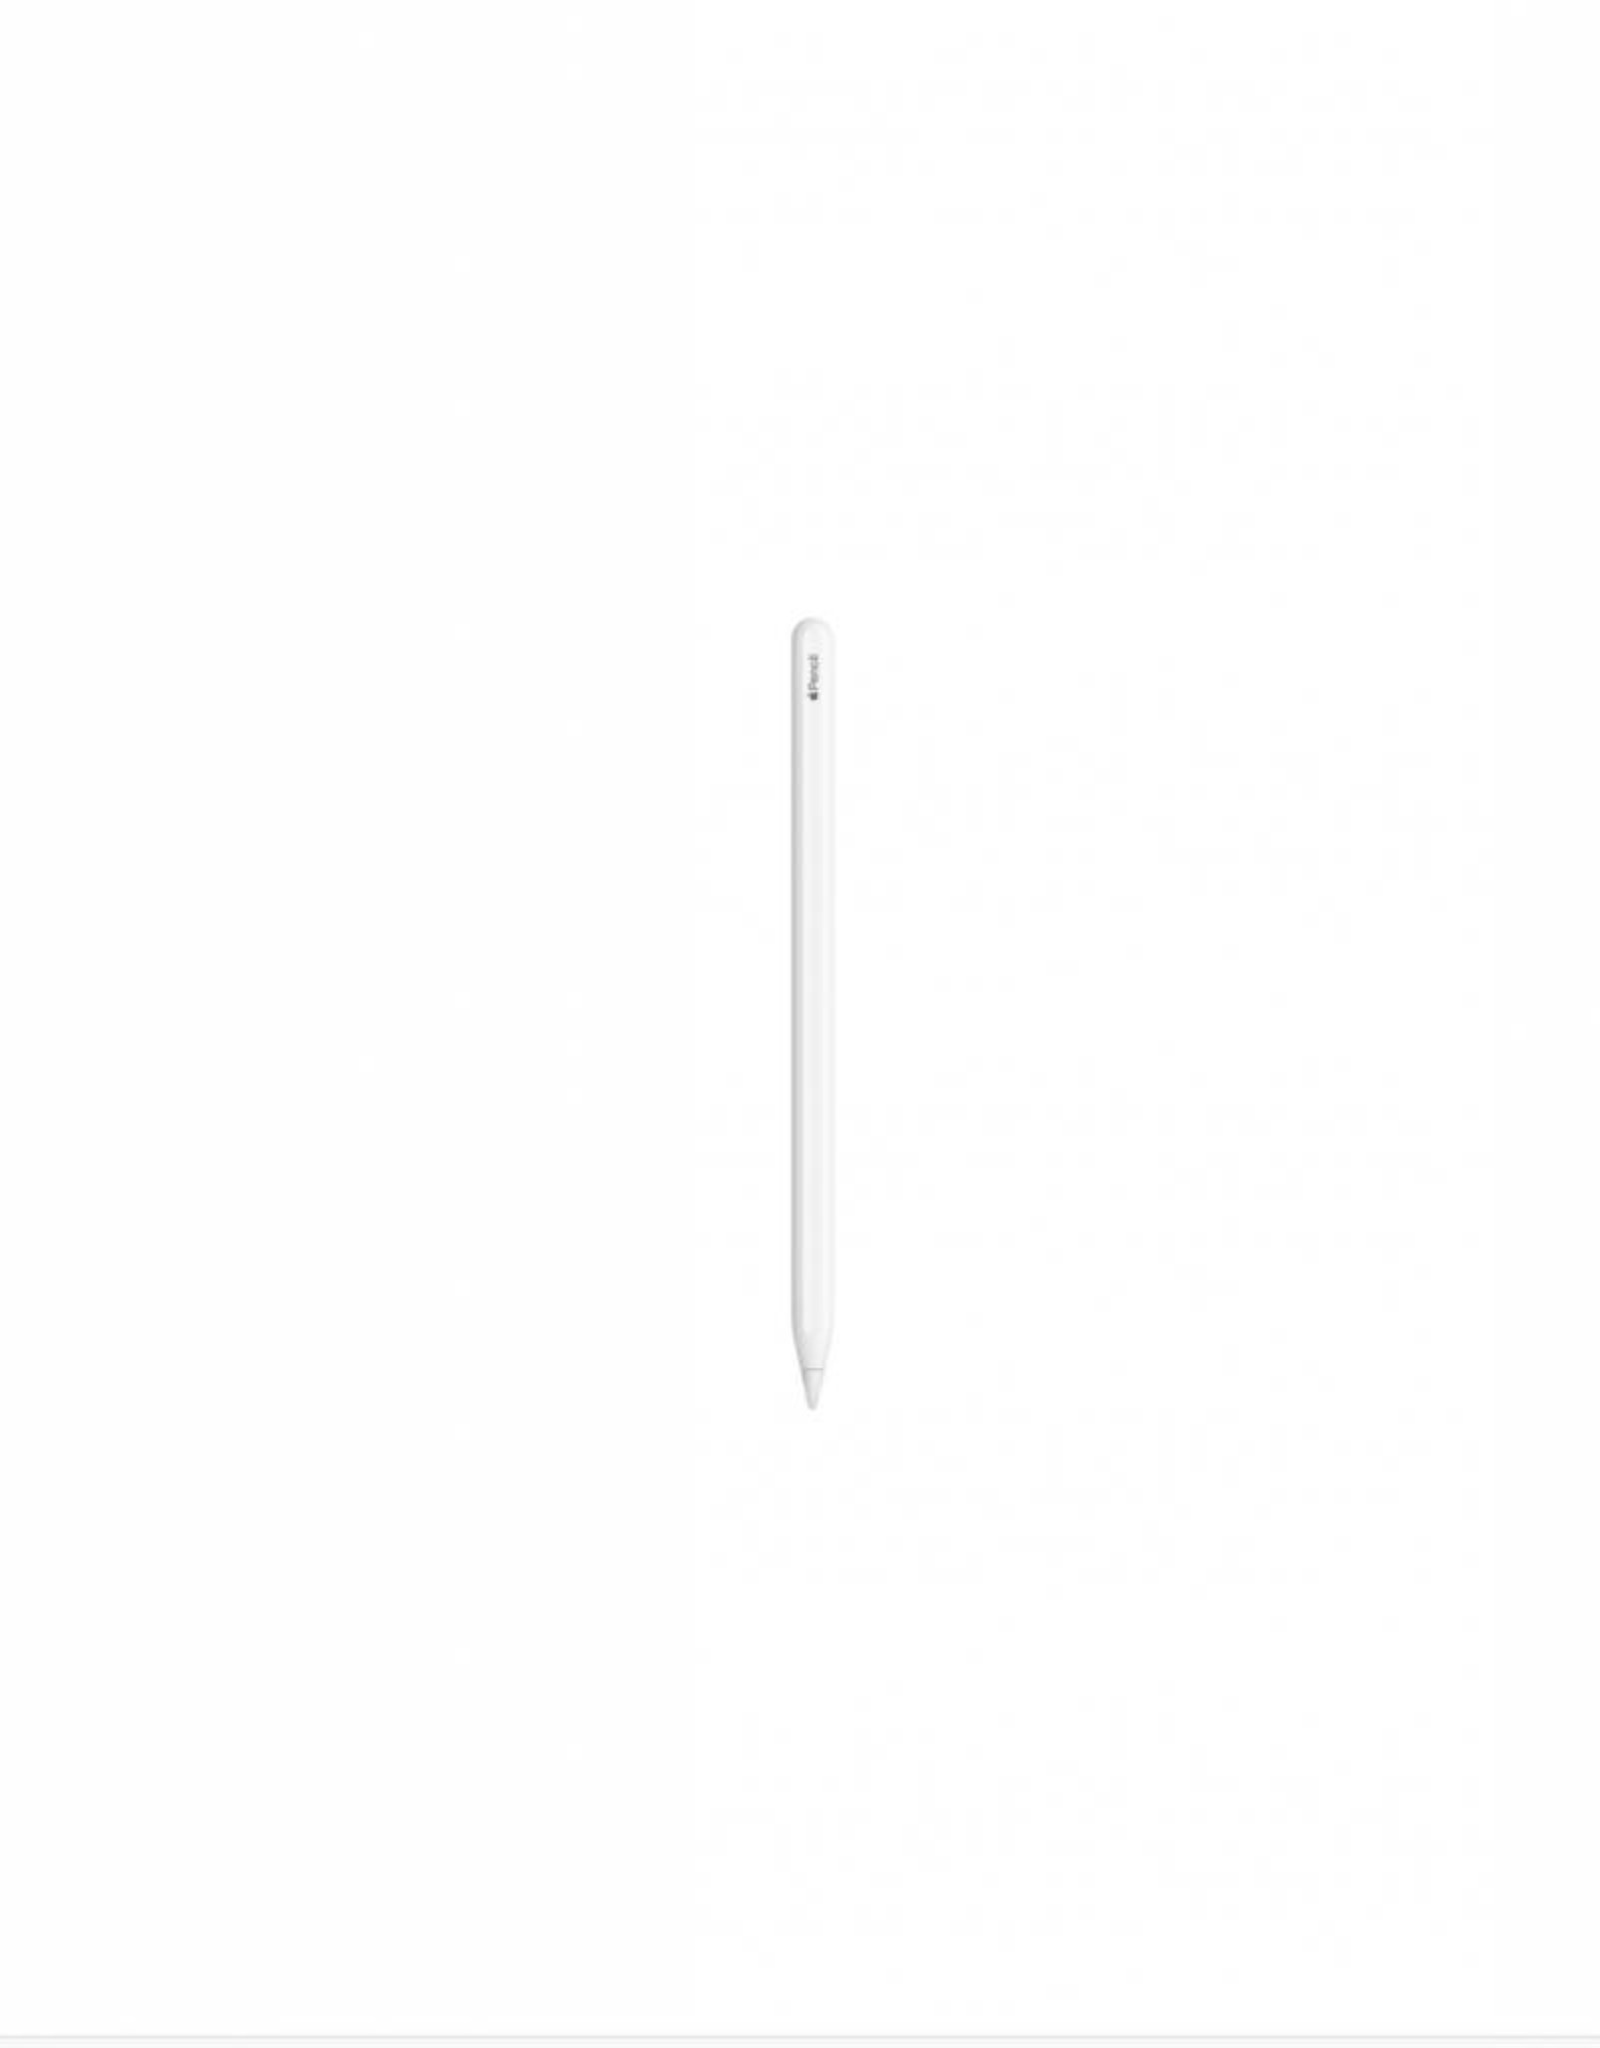 Apple APPLE PENCIL (2ND GEN FOR 2018 AND LATER IPAD PRO)